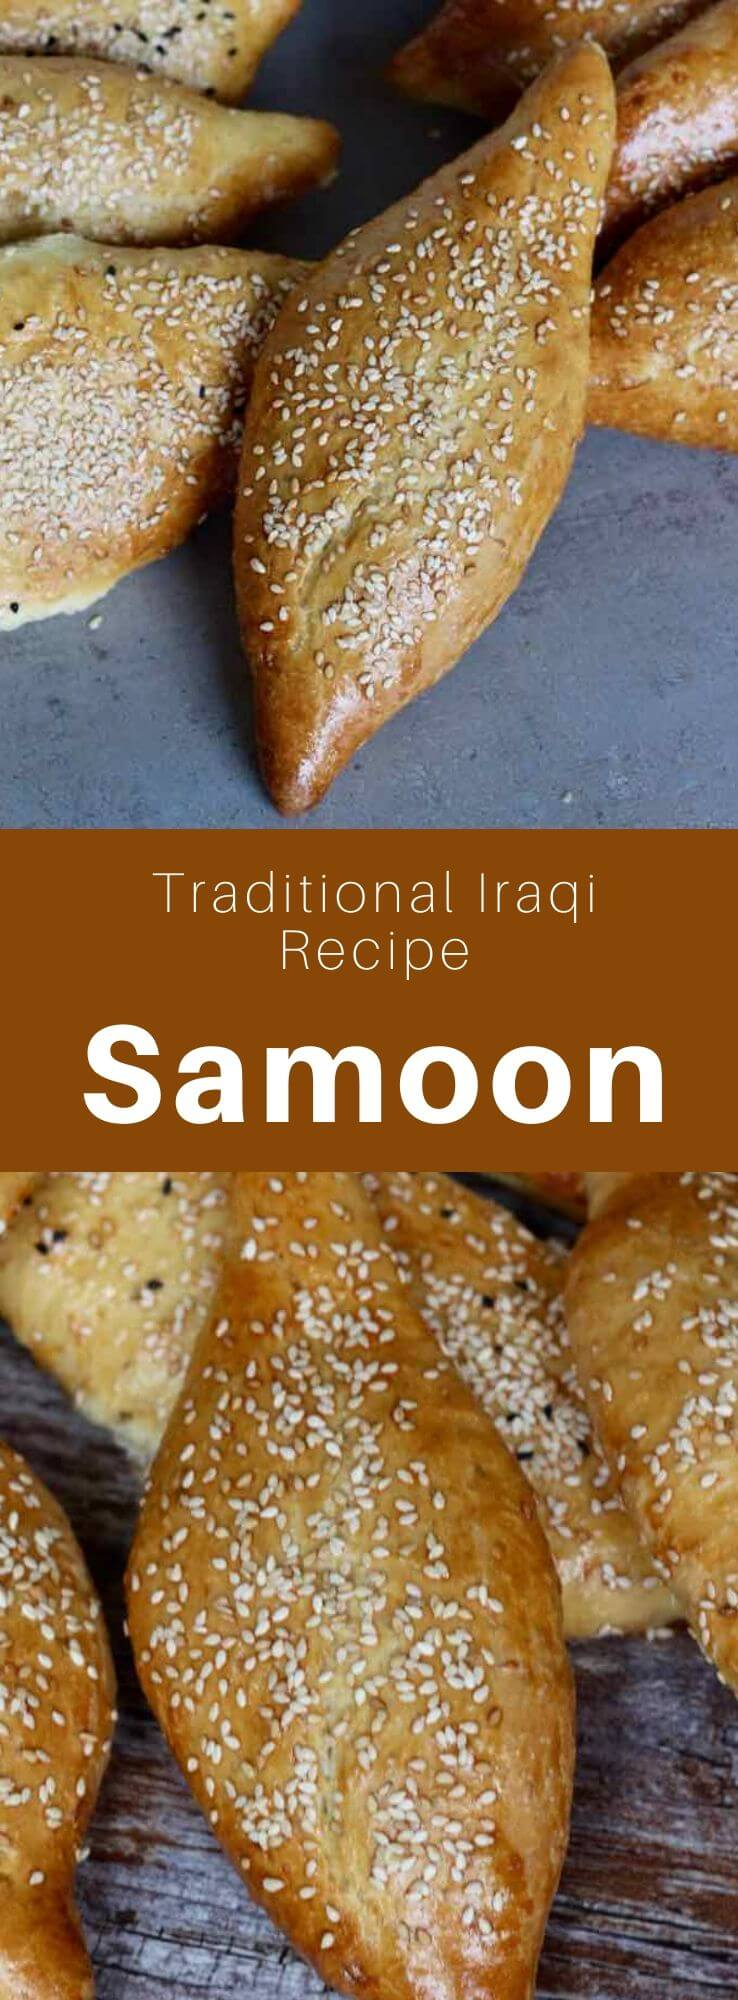 Samoon is one of the most popular breads in Iraq. Variations exist in Syria, Lebanon, Kuwait and Saudi Arabia. #MiddleEast #MiddleEastern #Iraq #IraqiCuisine #IraqiRecipe #WorldCuisine #196flavors